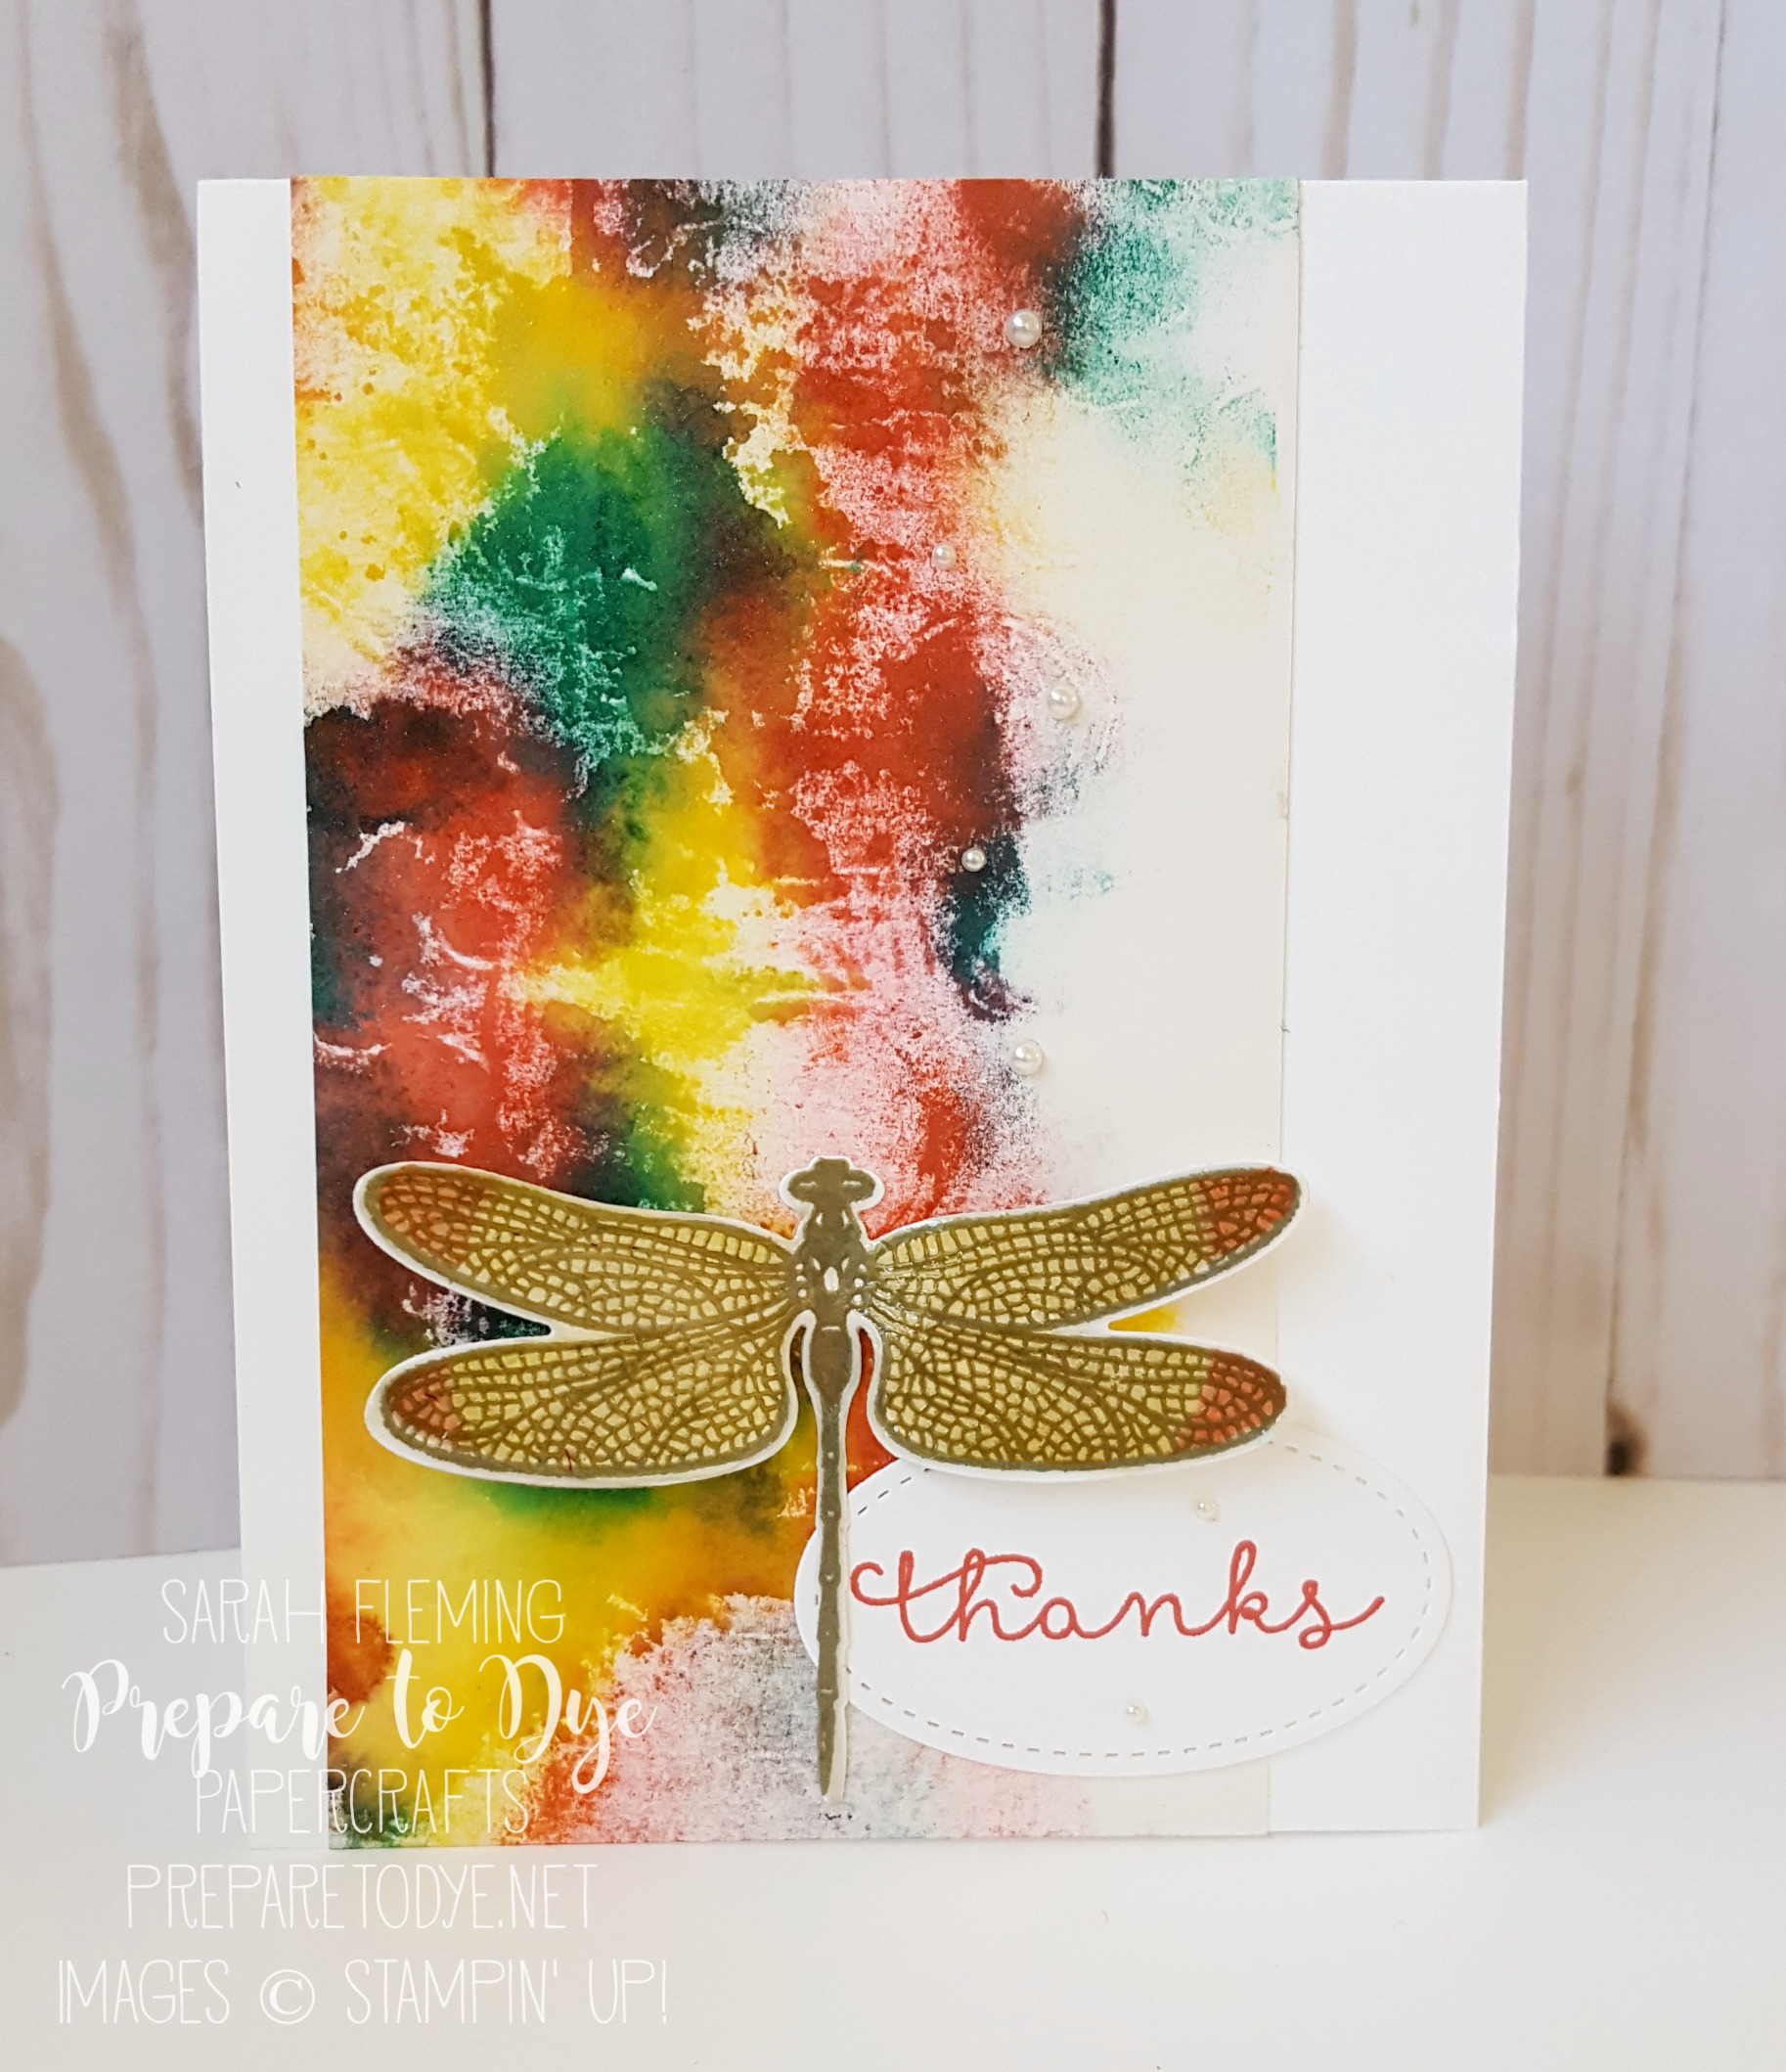 Stampin' Up! Dragonfly Dreams bundle - Baby Wipe Faux Batik background - Sarah Fleming - Prepare to Dye Papercrafts - International Blog Highlight winners